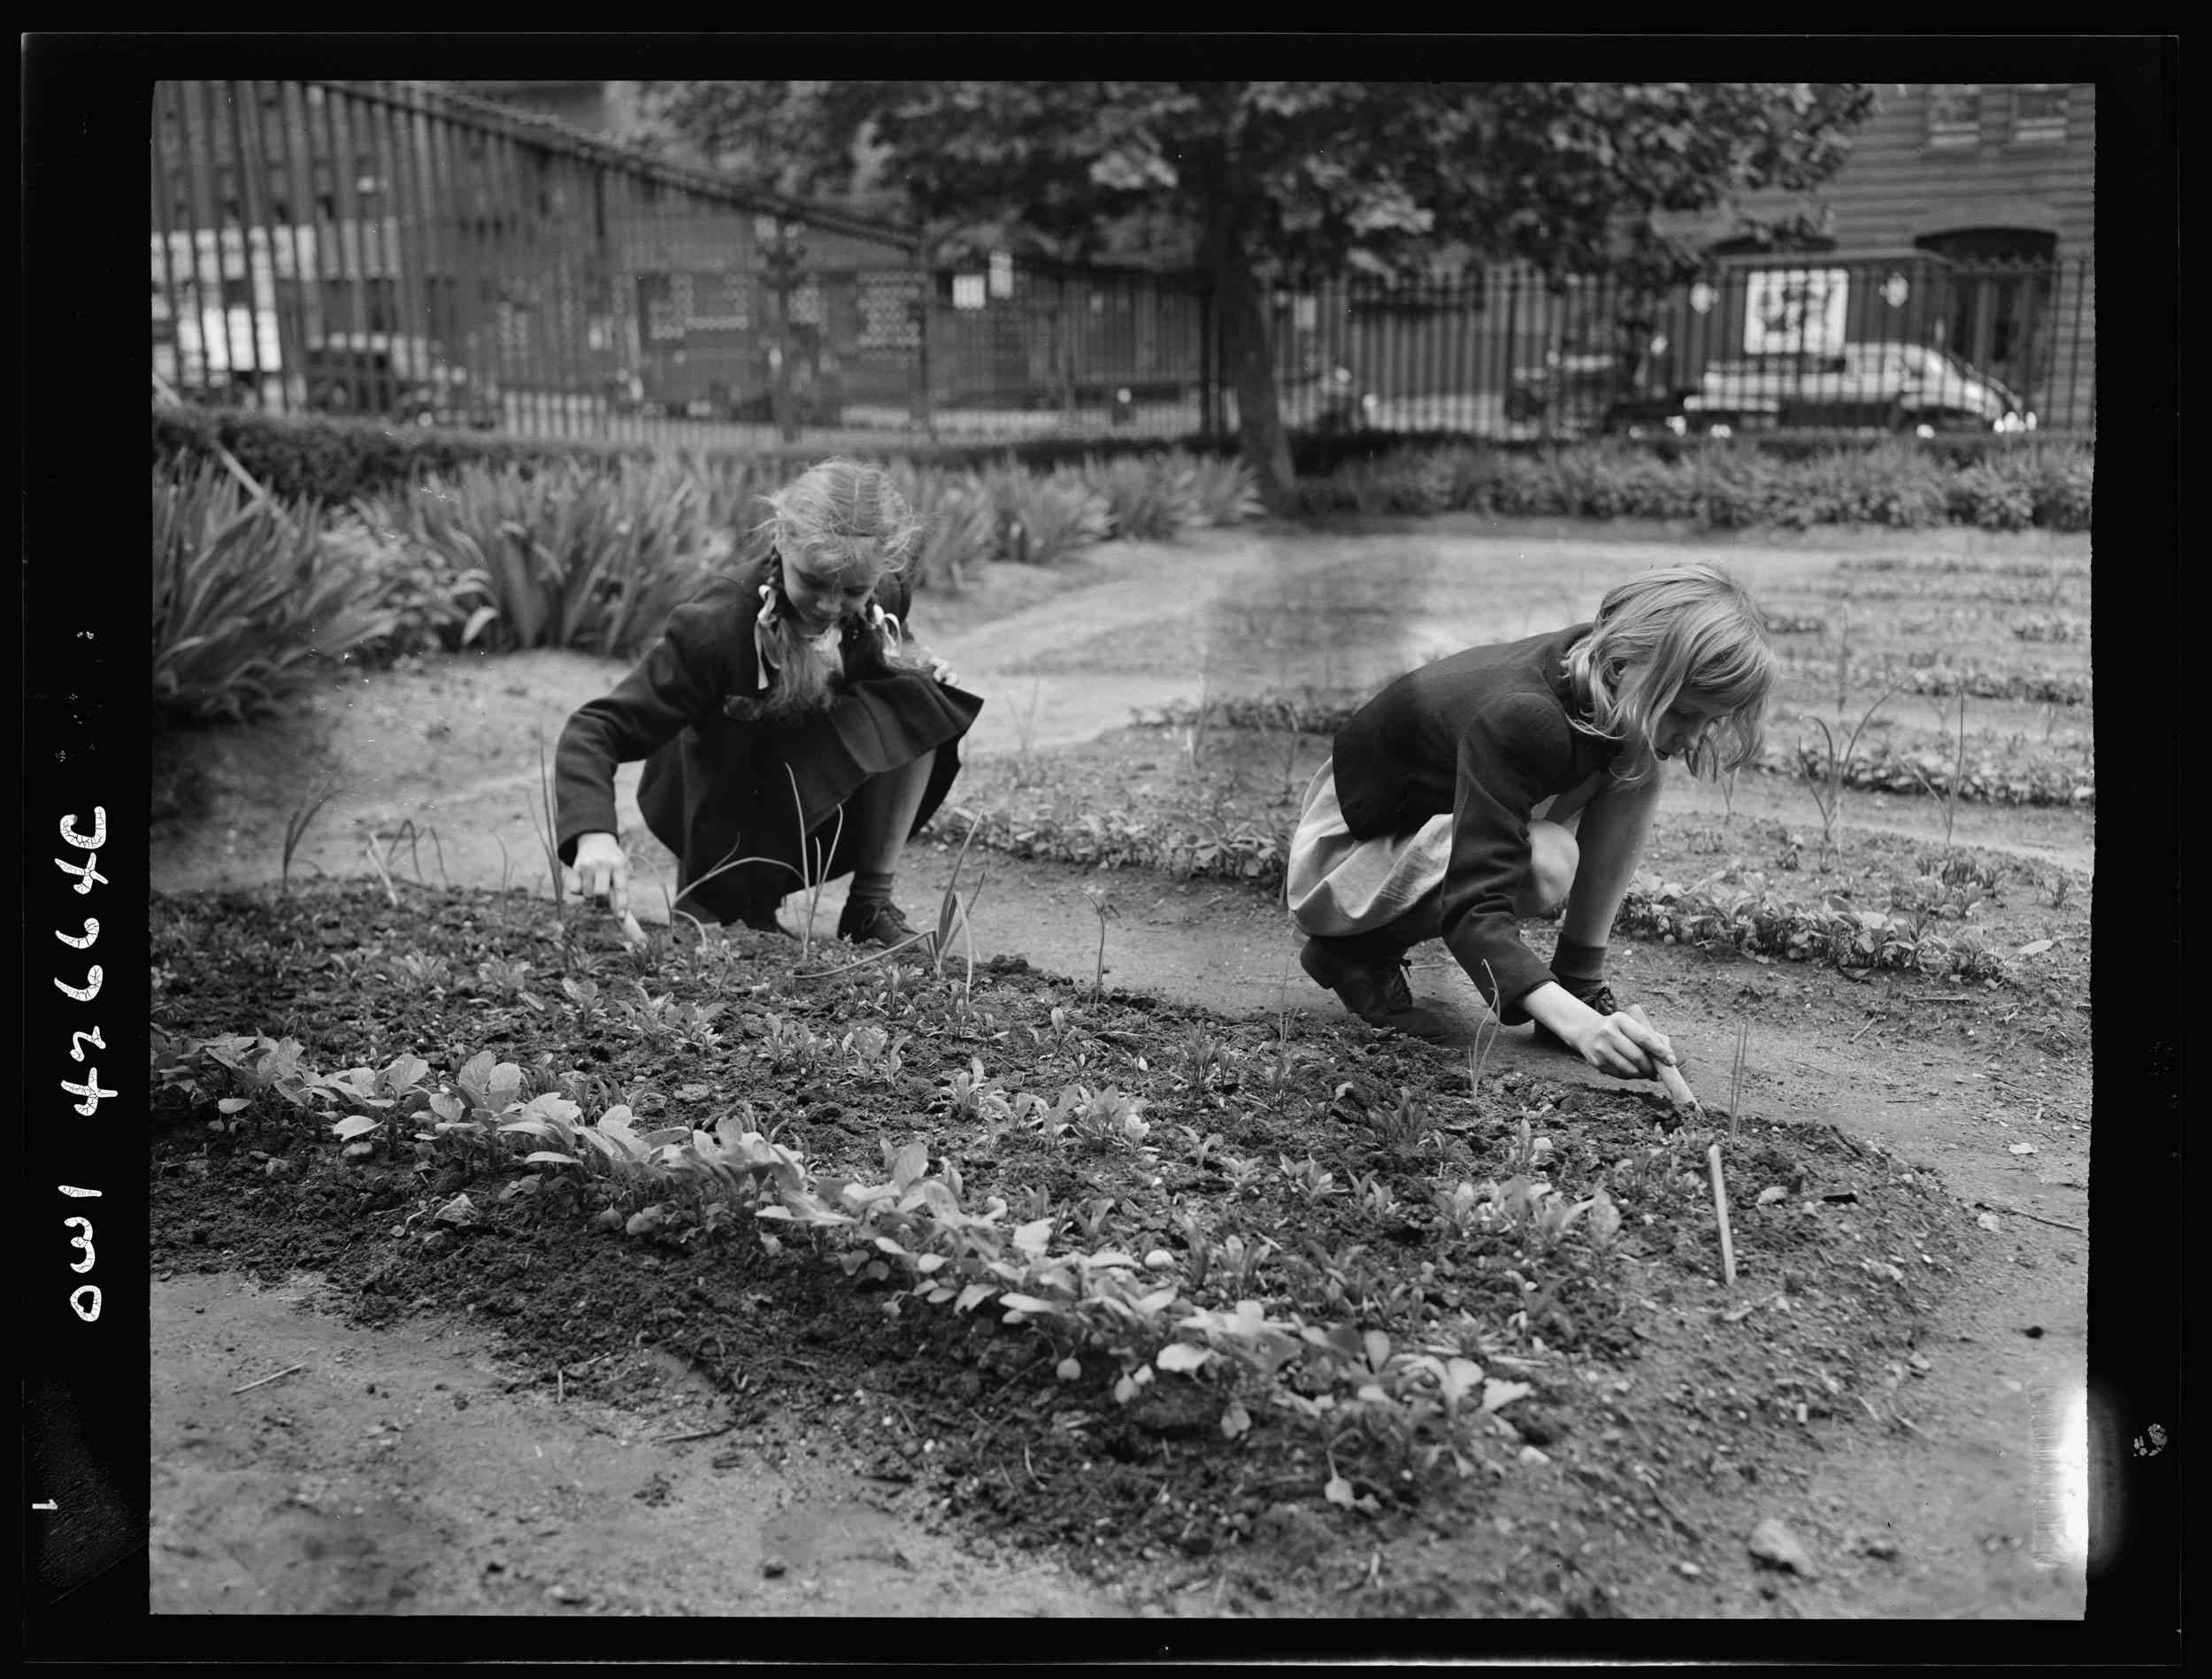 Two girls working in a garden in New York City